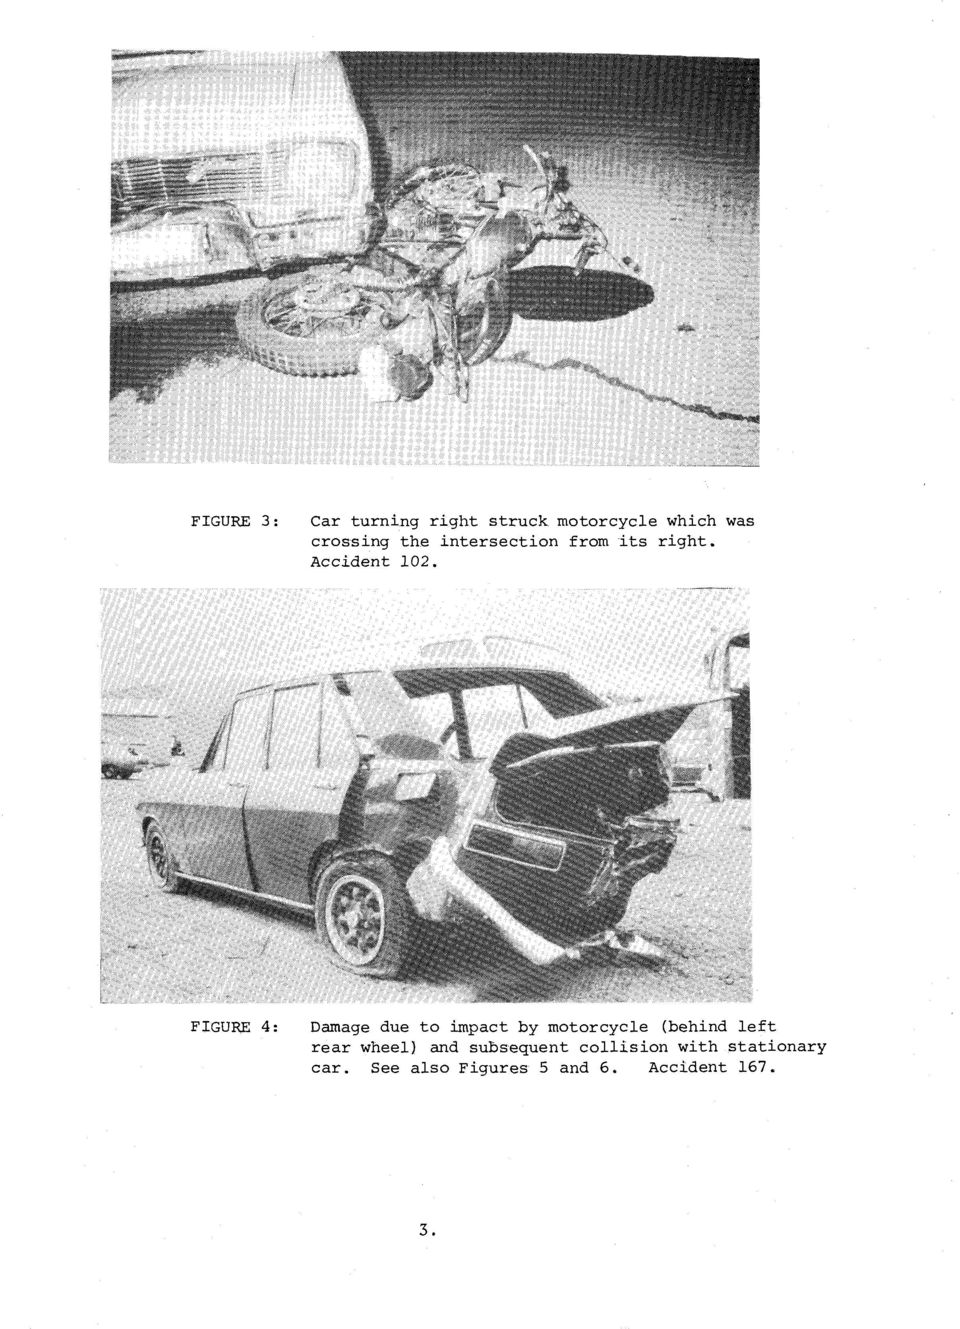 FIGURE 4: Damage due to impact by motorcycle (behind left rear